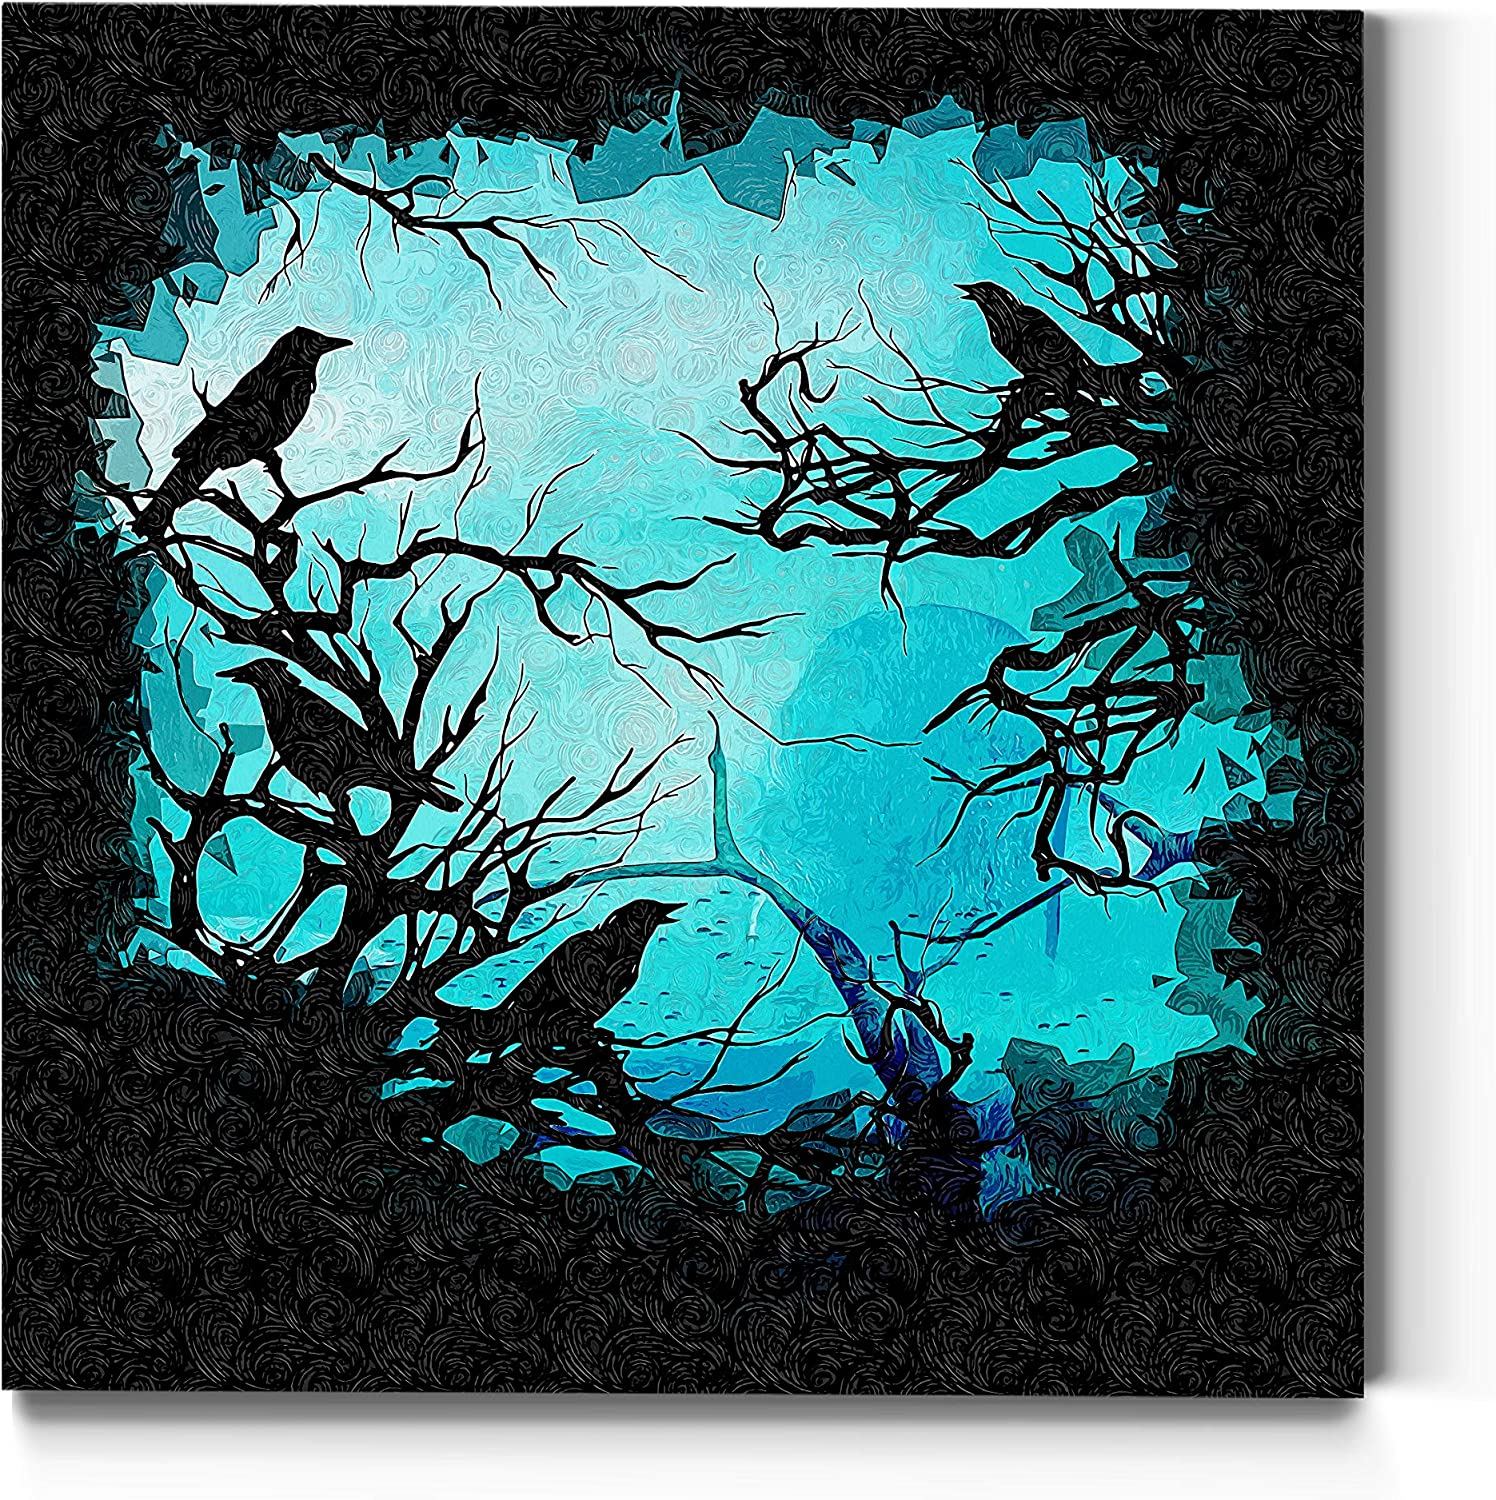 Renditions Gallery Haunted Forest Wall Art, Spooky Halloween Decorations, Black Crows, Ravens, Colorful, Premium Gallery Wrapped Canvas Decor, Ready to Hang, 24 in H x 24 in W, Made in America Print